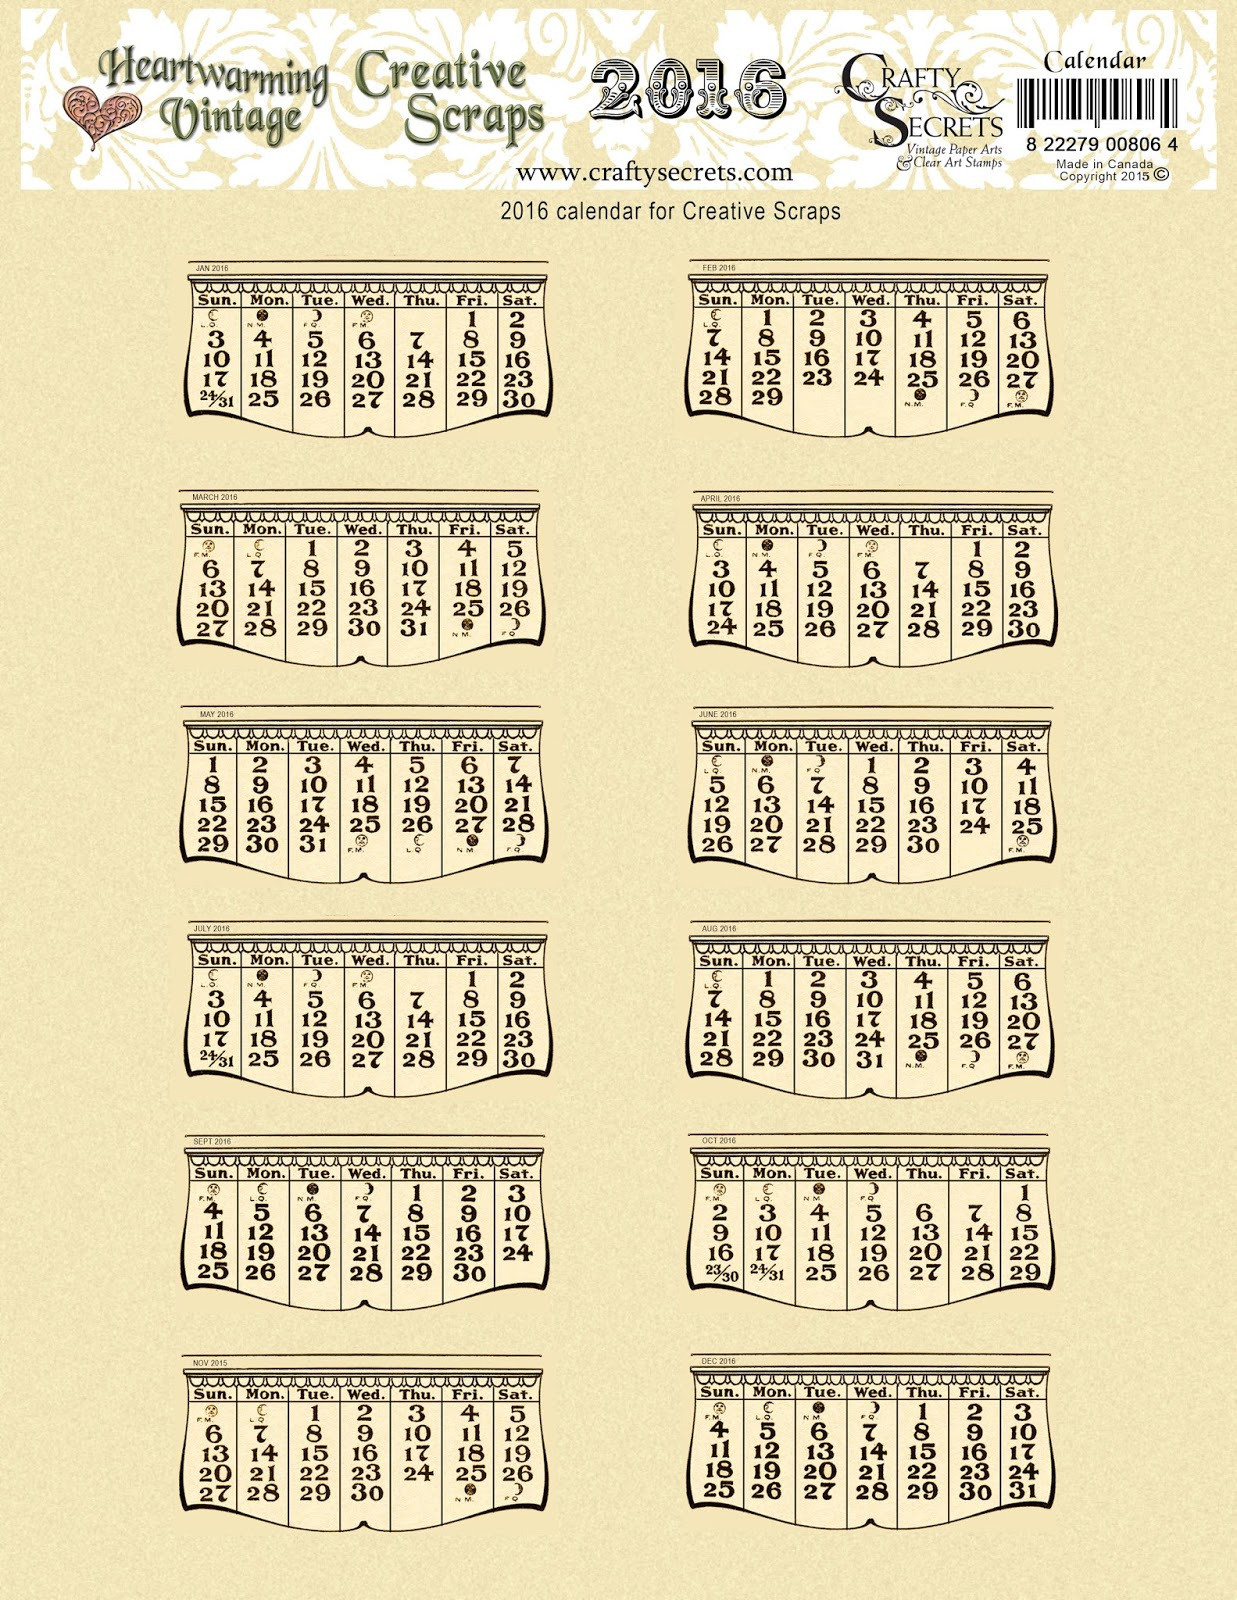 Vintage Calendar Template : Crafty secrets heartwarming vintage ideas and tips free